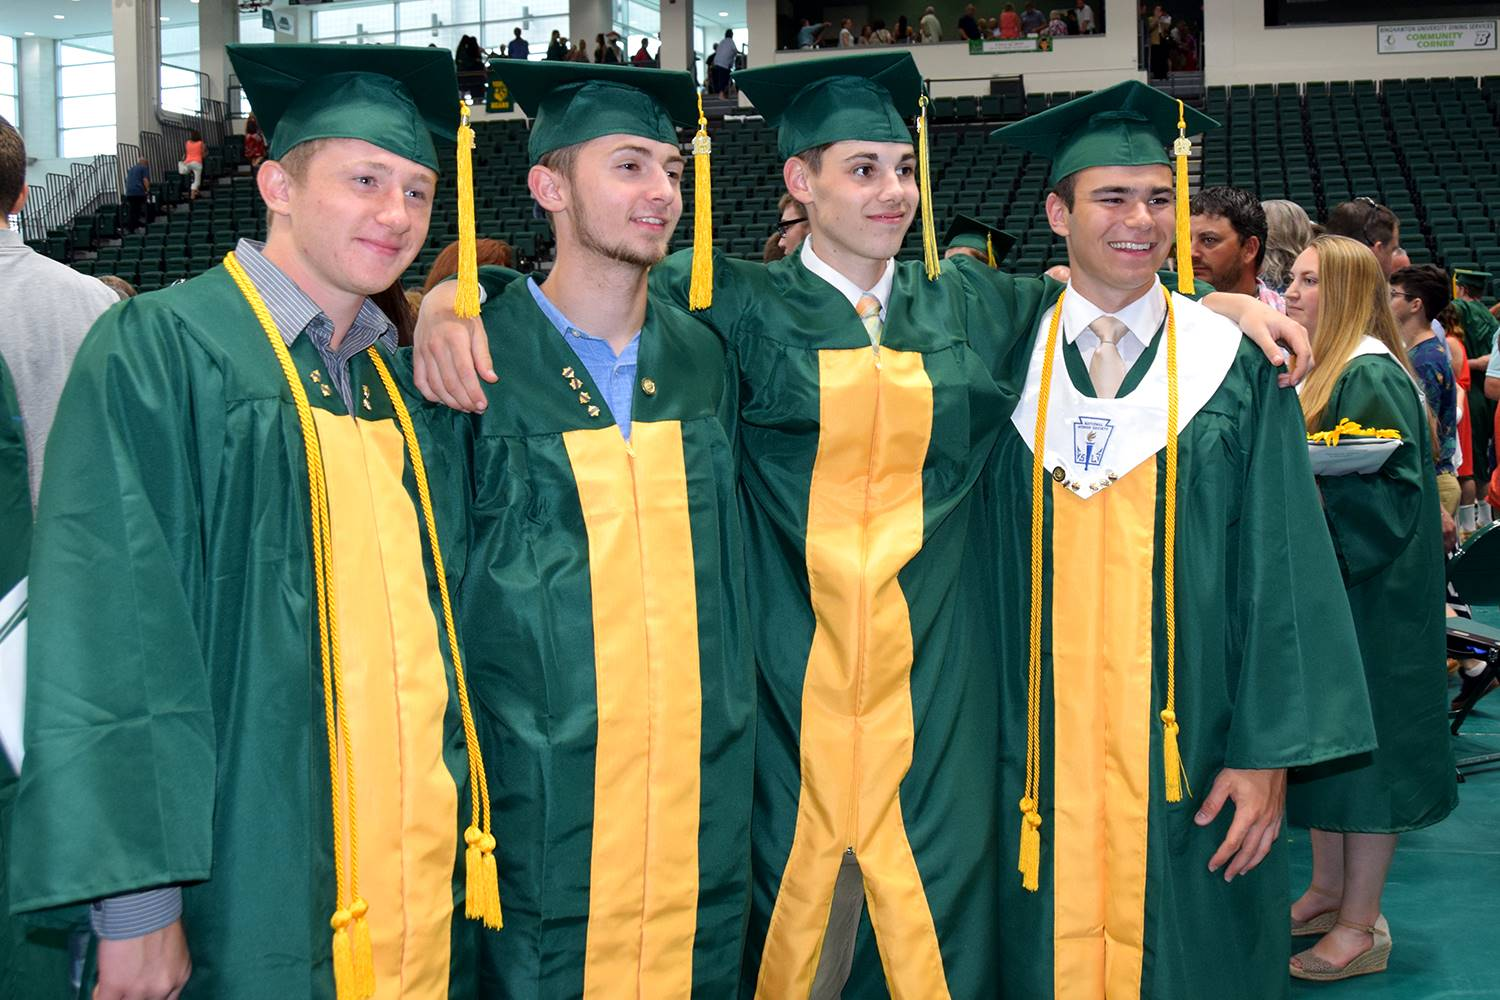 Four guys in green caps and gowns stand together for a group photo after their Vestal High School gr